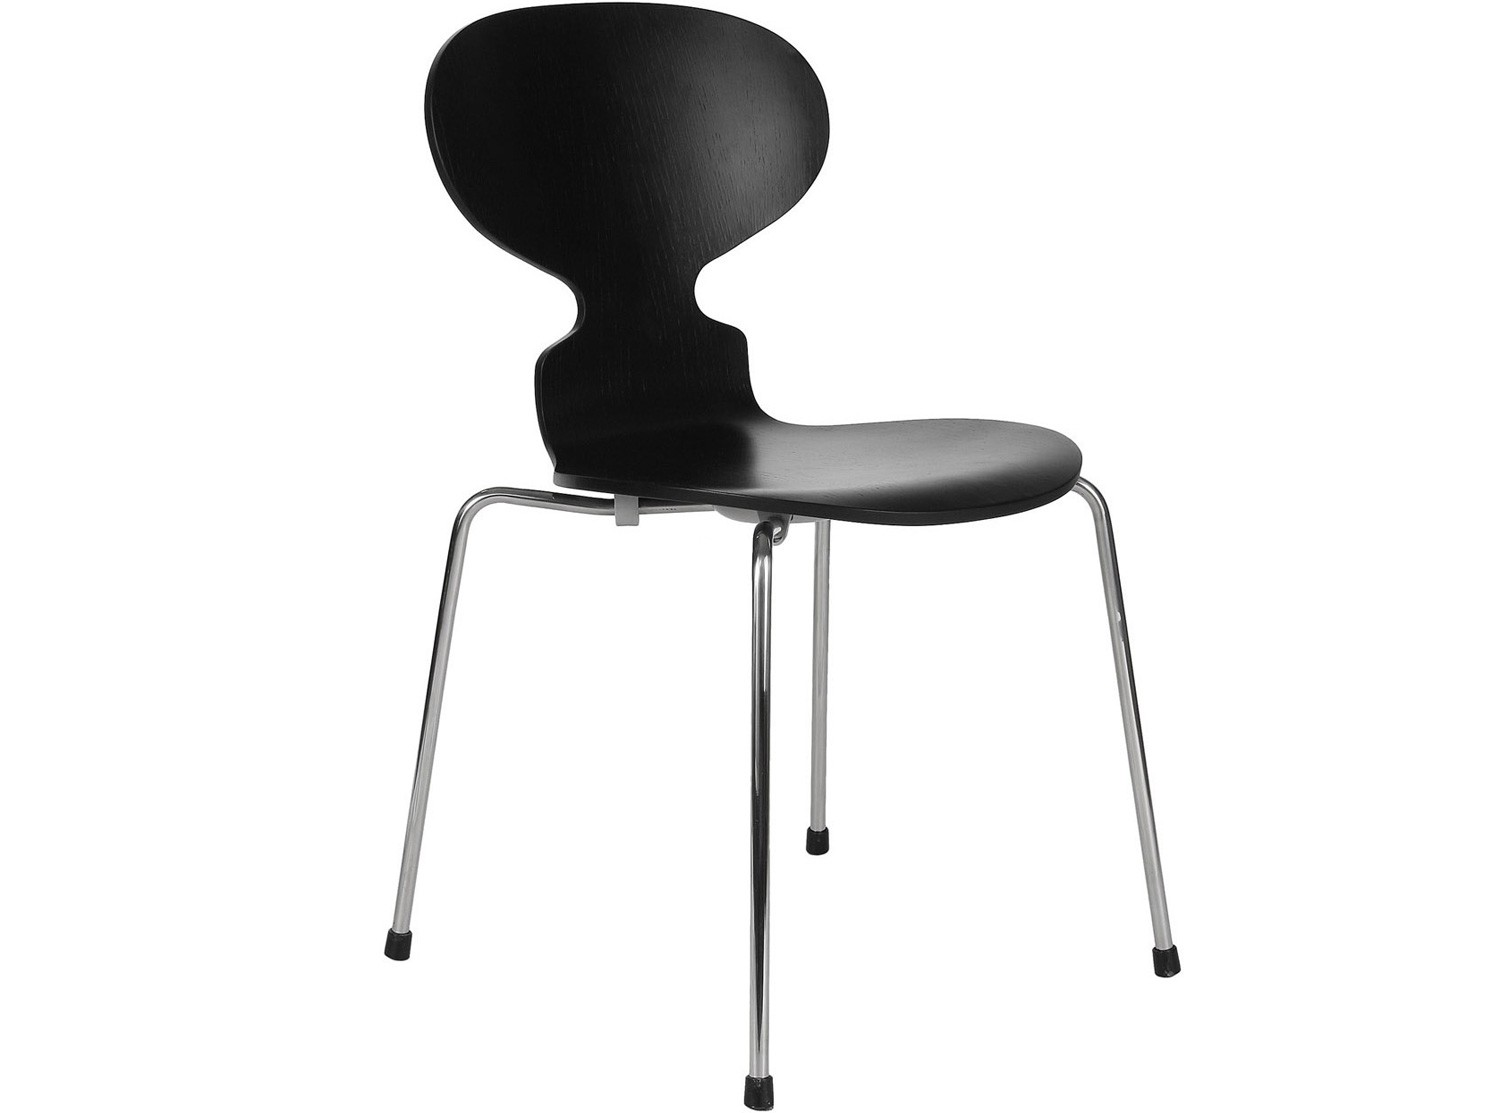 Ant chair 4 legs by arne jacobsen platinum replica for Arne jacobsen replica